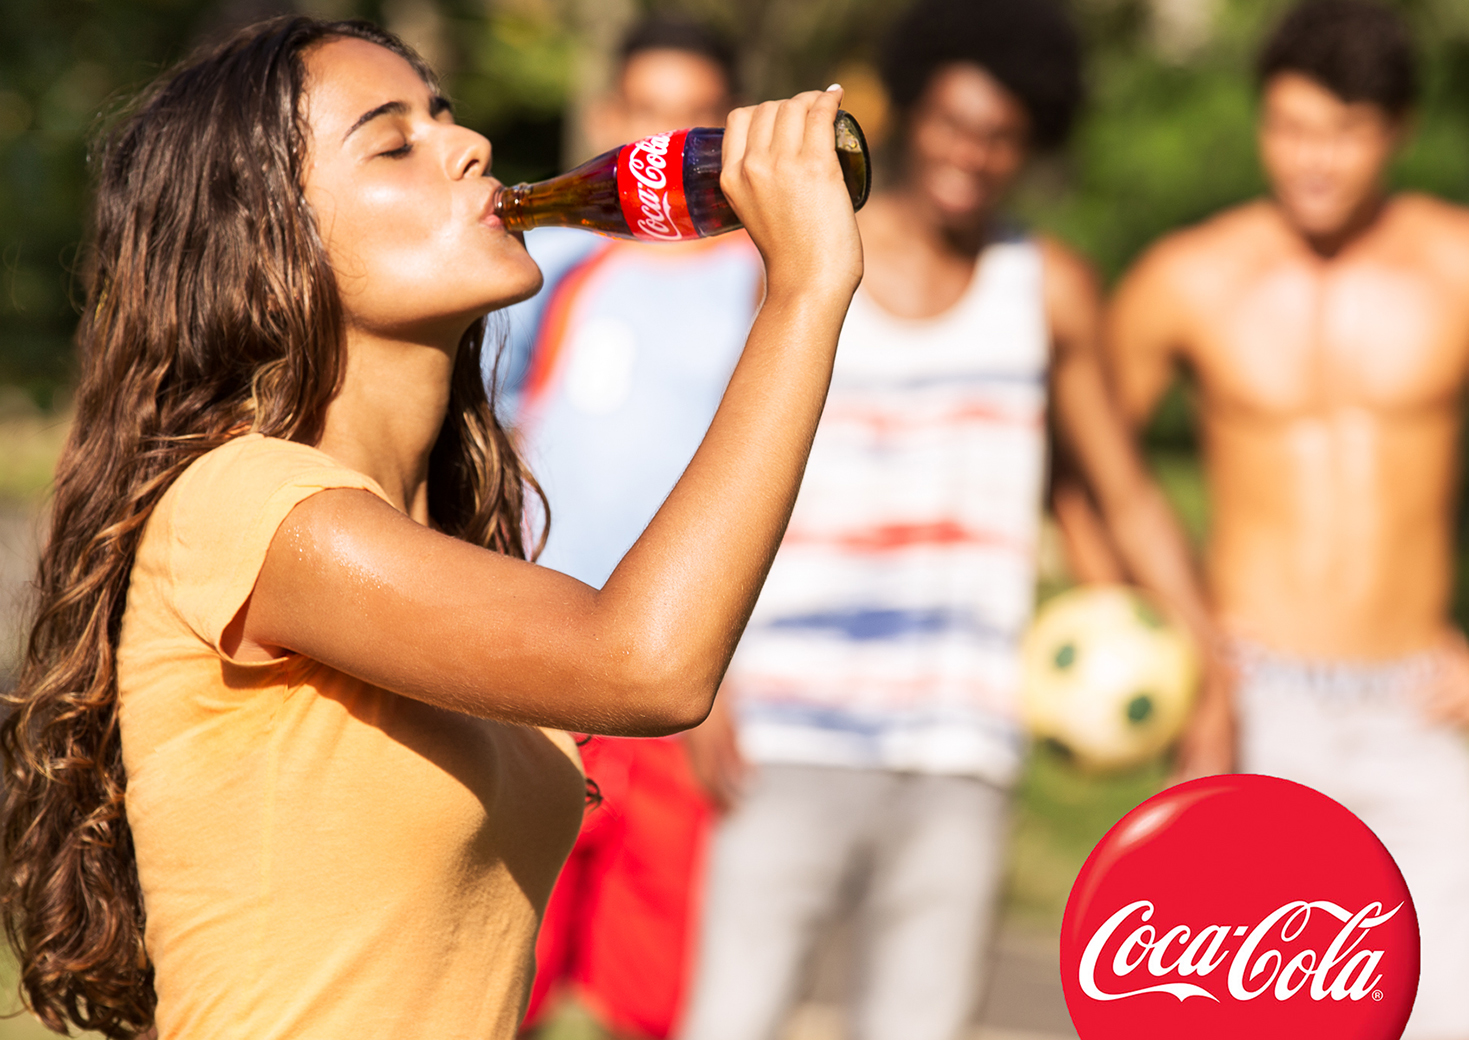 Reinsdorf-Advertising-Coke-Lifestyle-Brazil-World-Cup-Action-011